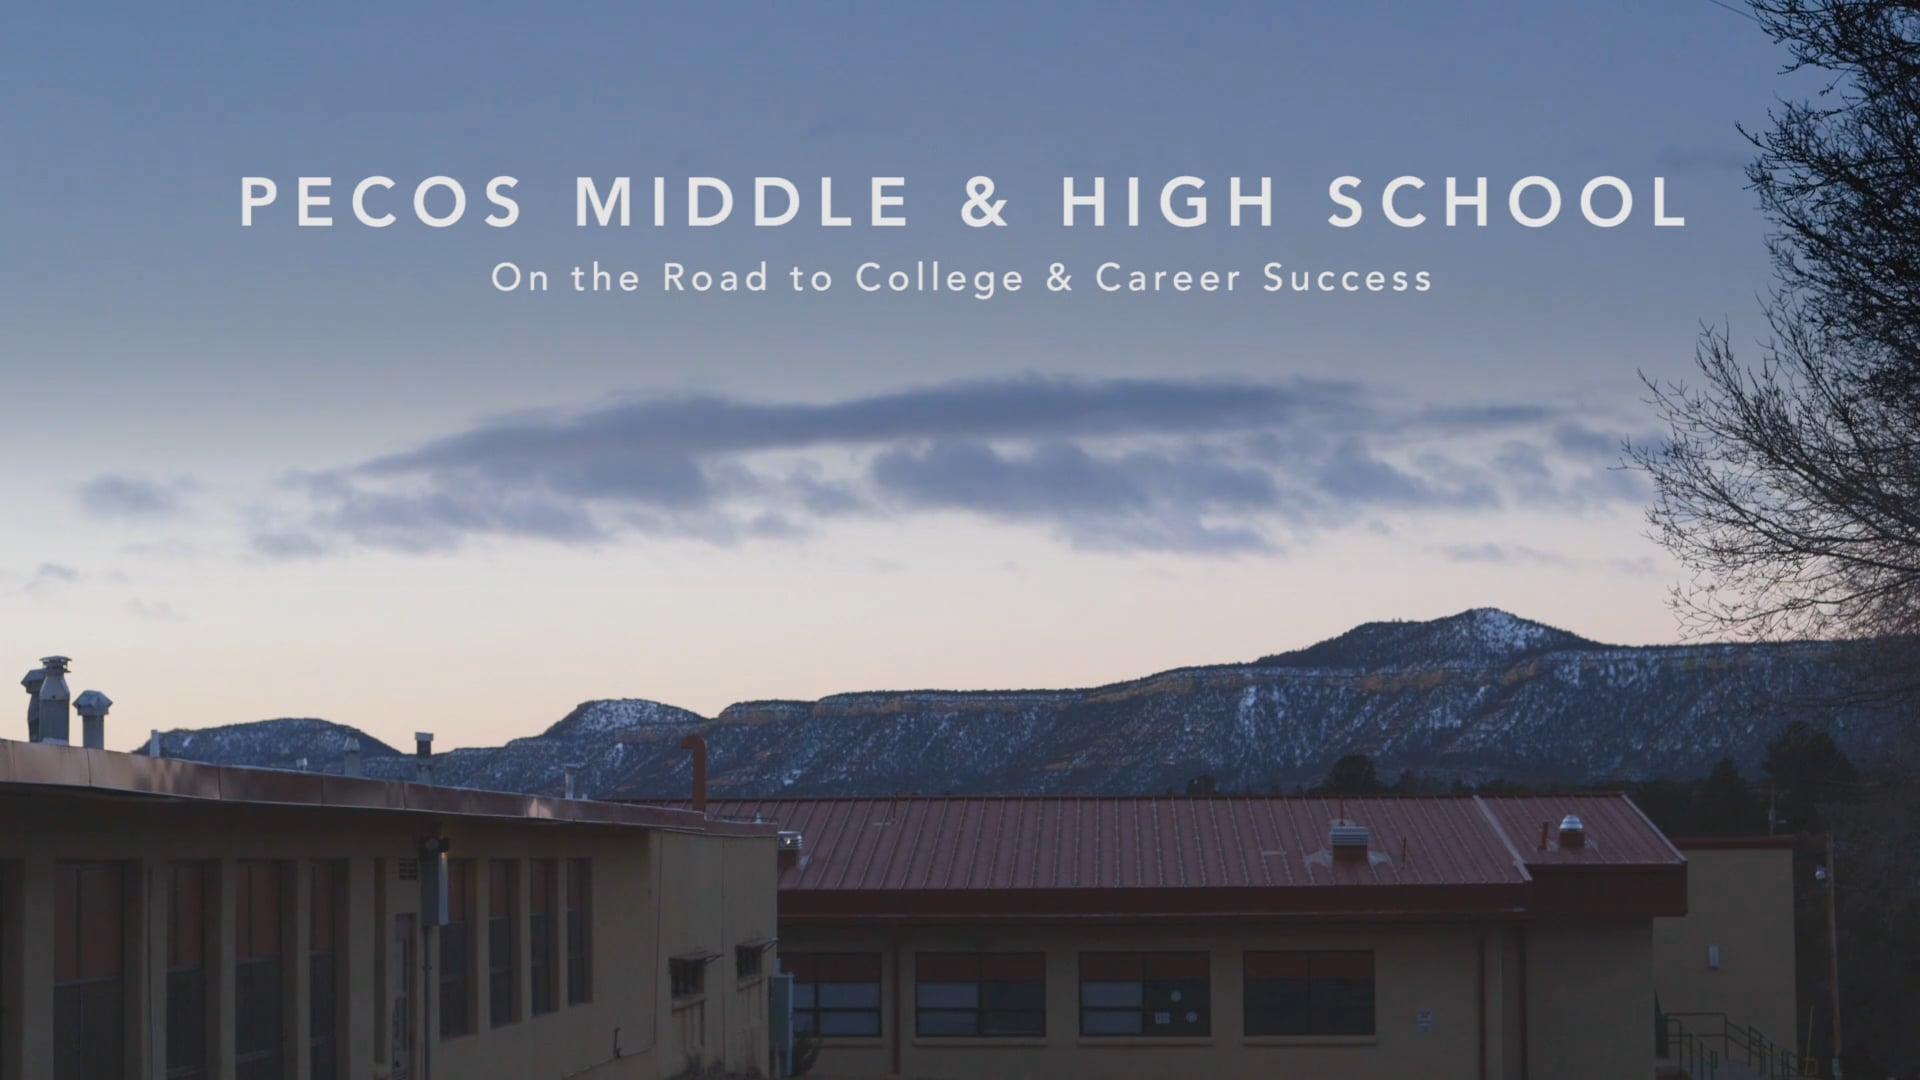 Pecos Middle & High School: On the Road to College & Career Success